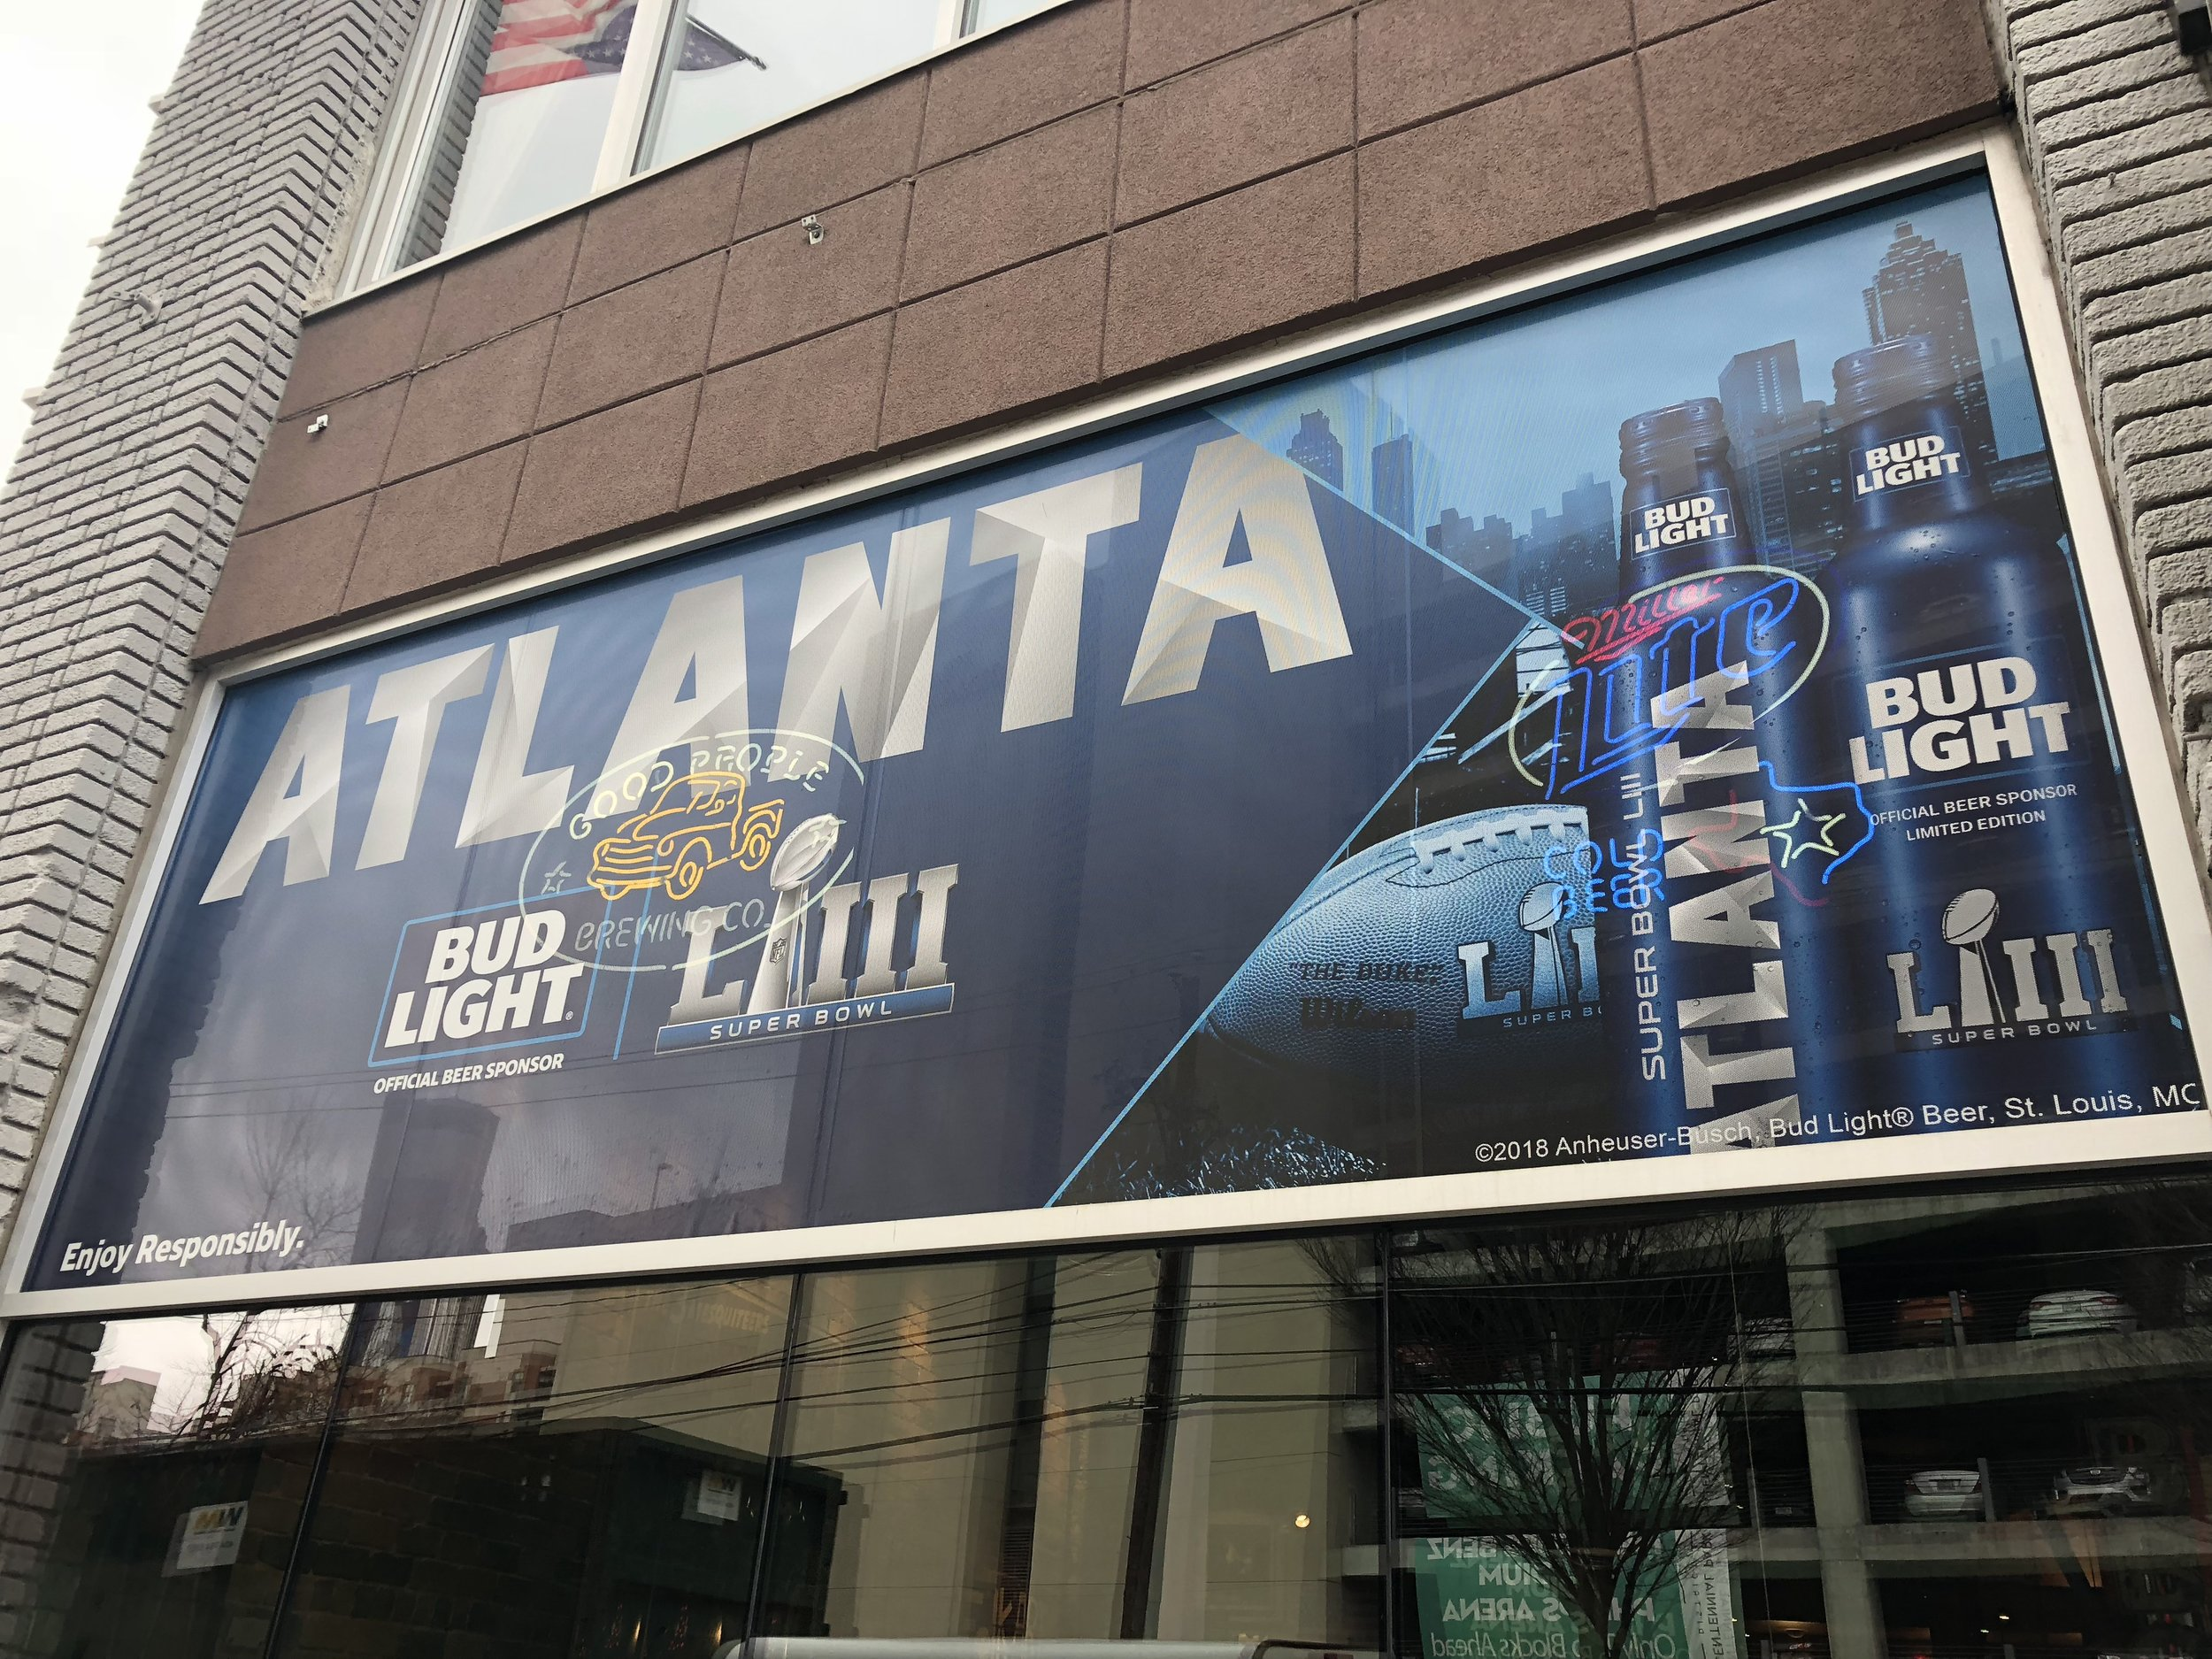 Anheuser-Busch-Super-Bowl-LIII_Twin-Smokers-Restaurant_Window-Graphics_Events_LSIGraphics_Atlanta-GA ..